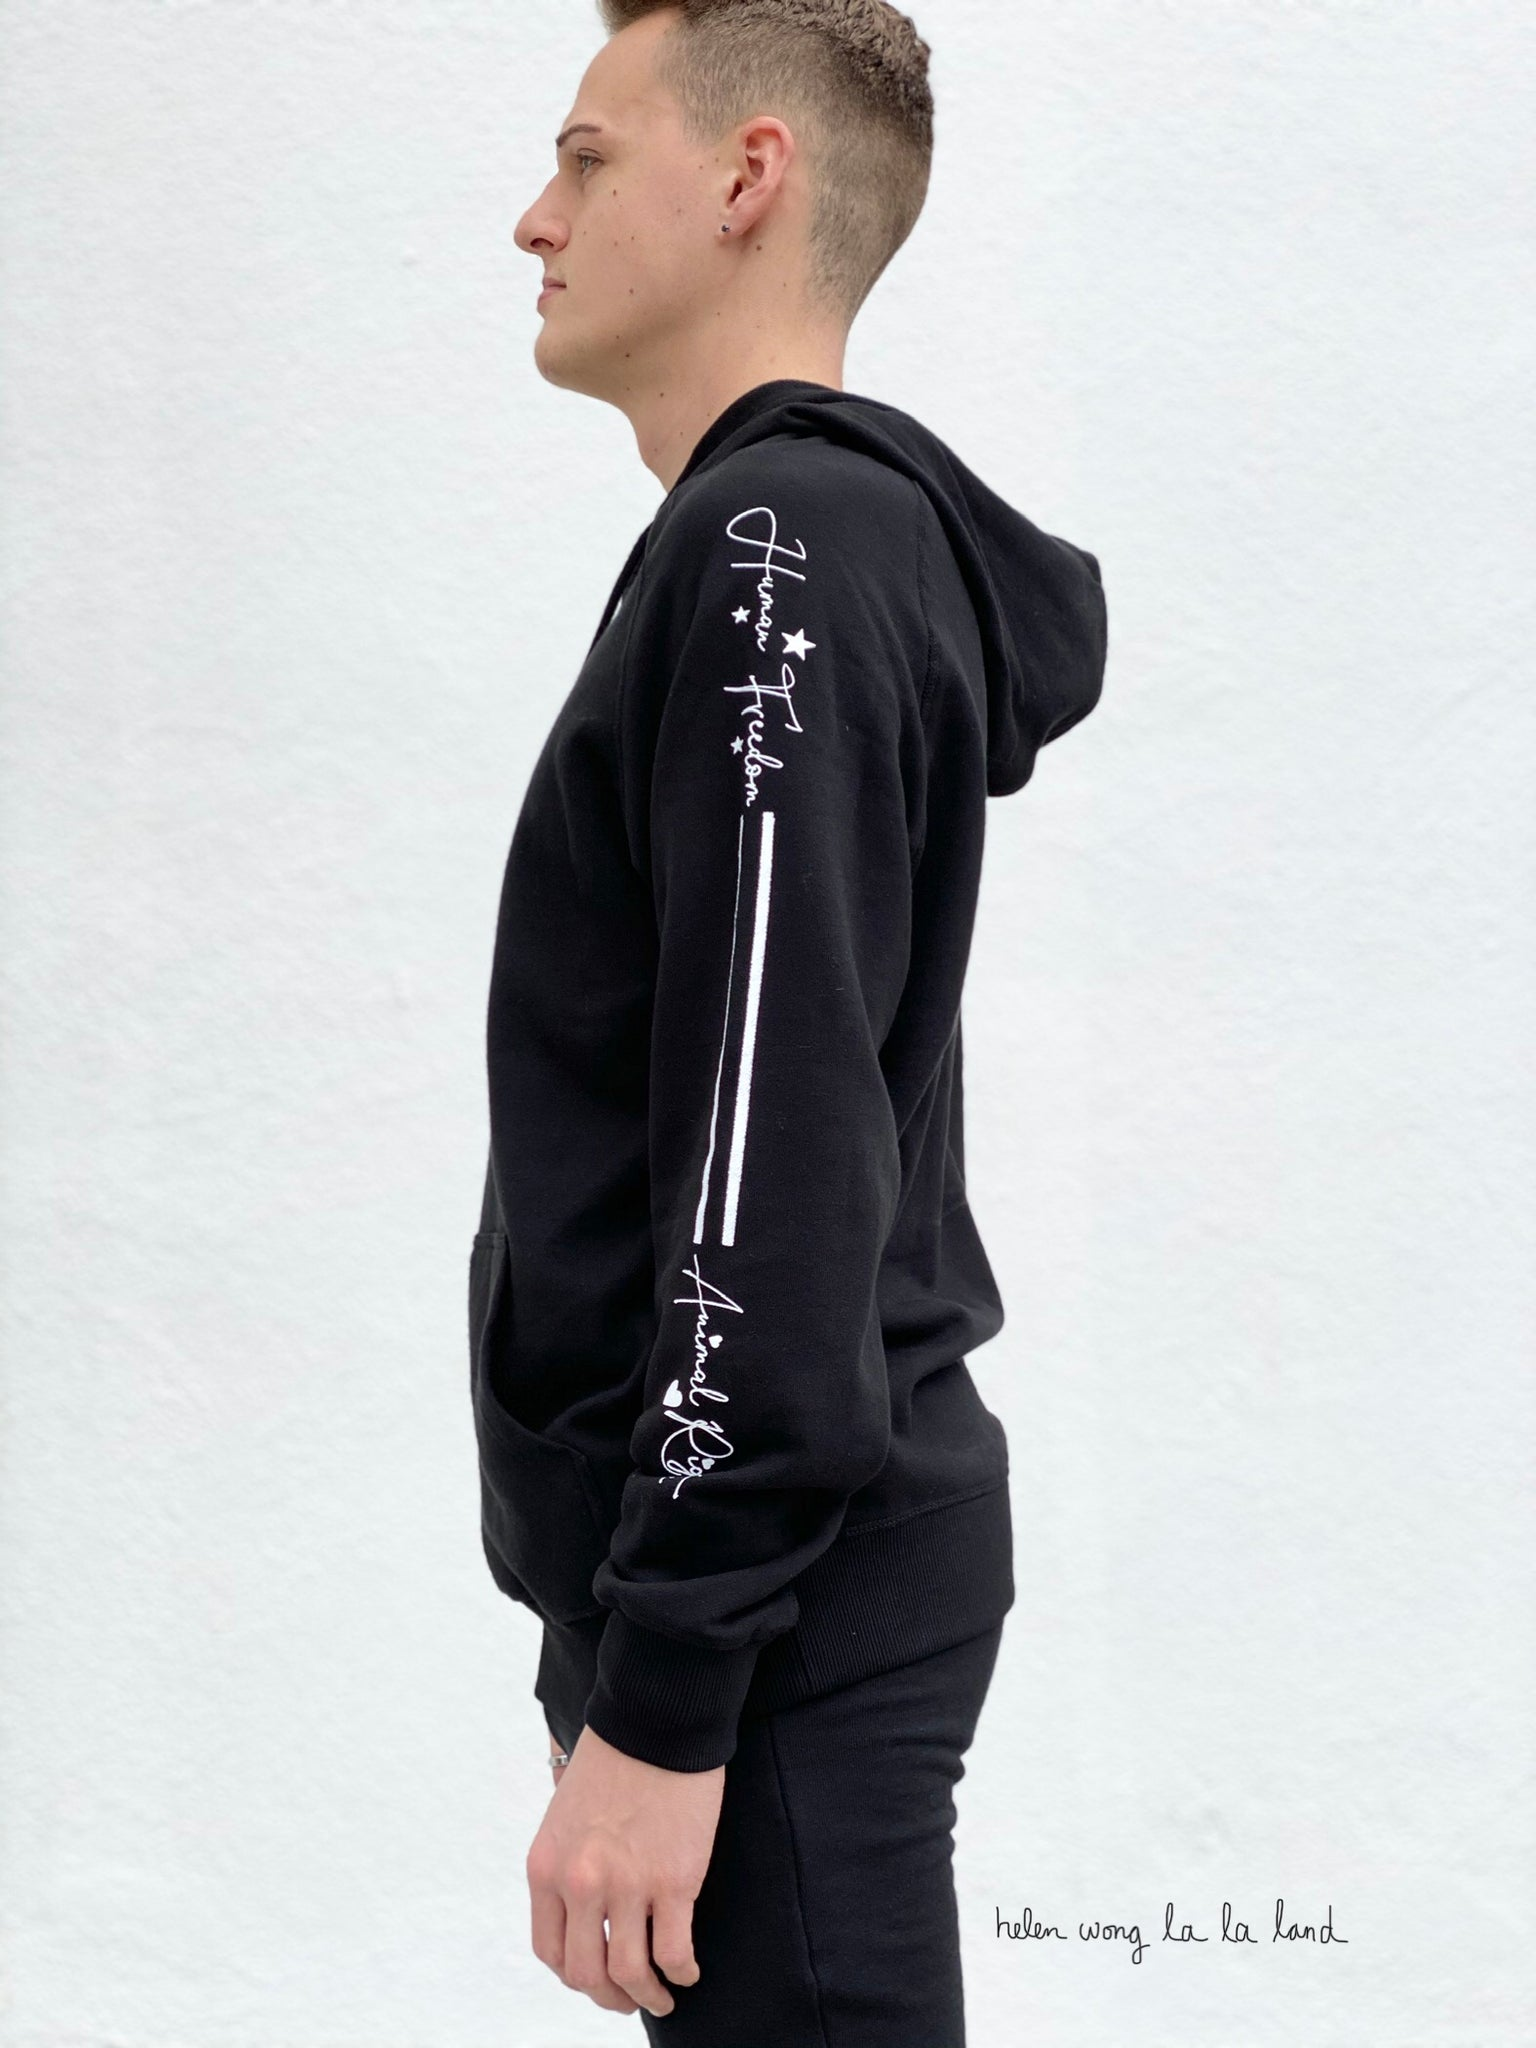 (S/S 2020) Human Freedom = Animal Rights hoodie in BLACK